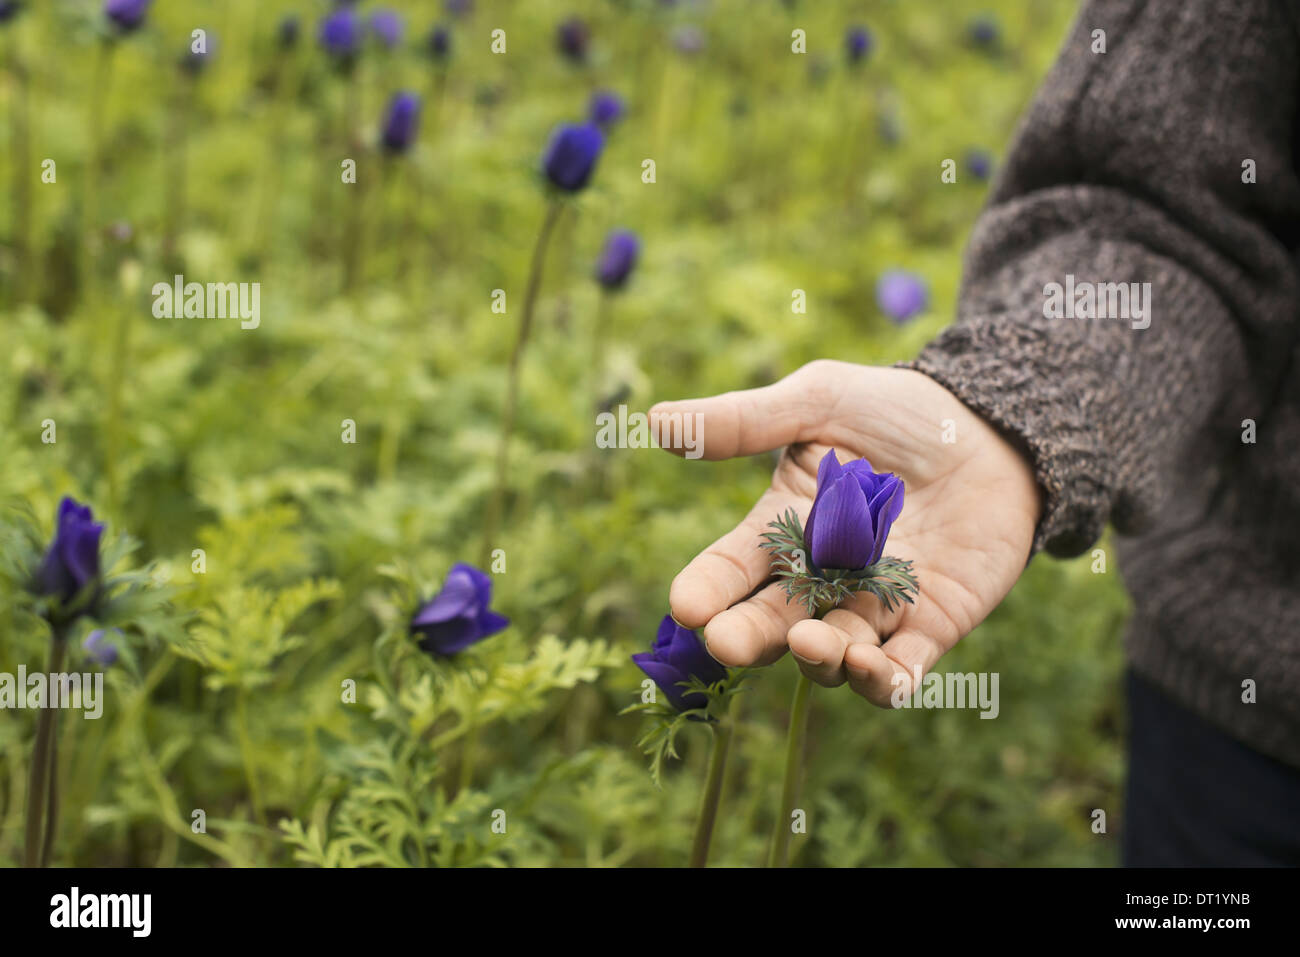 A man working in an organic plant nursery glasshouse in early spring - Stock Image